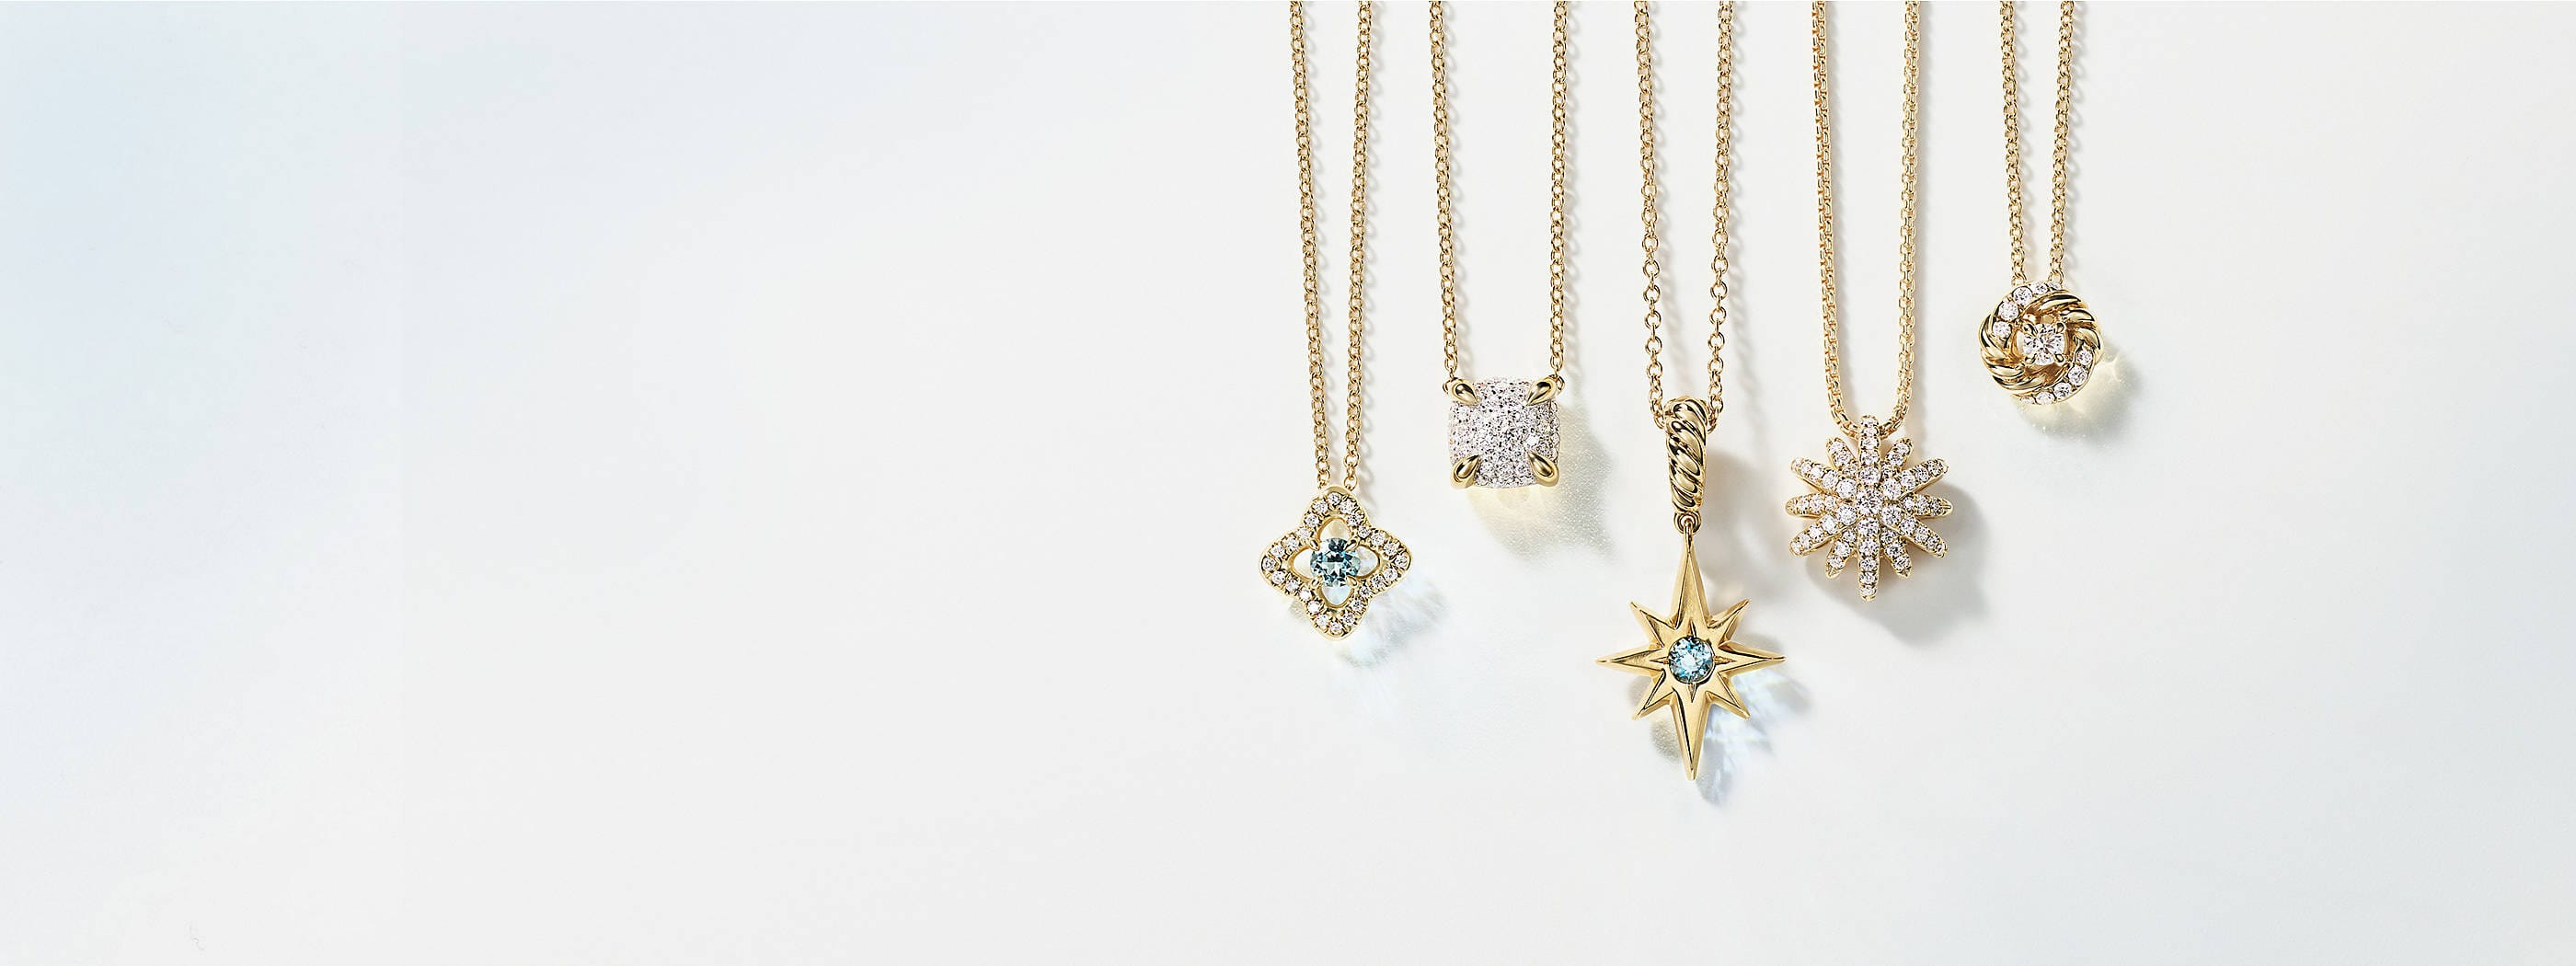 A color photograph shows a horizontal row of five David Yurman charm necklaces hanging in front of a light blue and white background. The women's jewelry is crafted from 18K yellow gold with or without pavé diamonds and aquamarine center stones. The pendants come in various shapes such as a star, circle, cushion and quatrefoil.